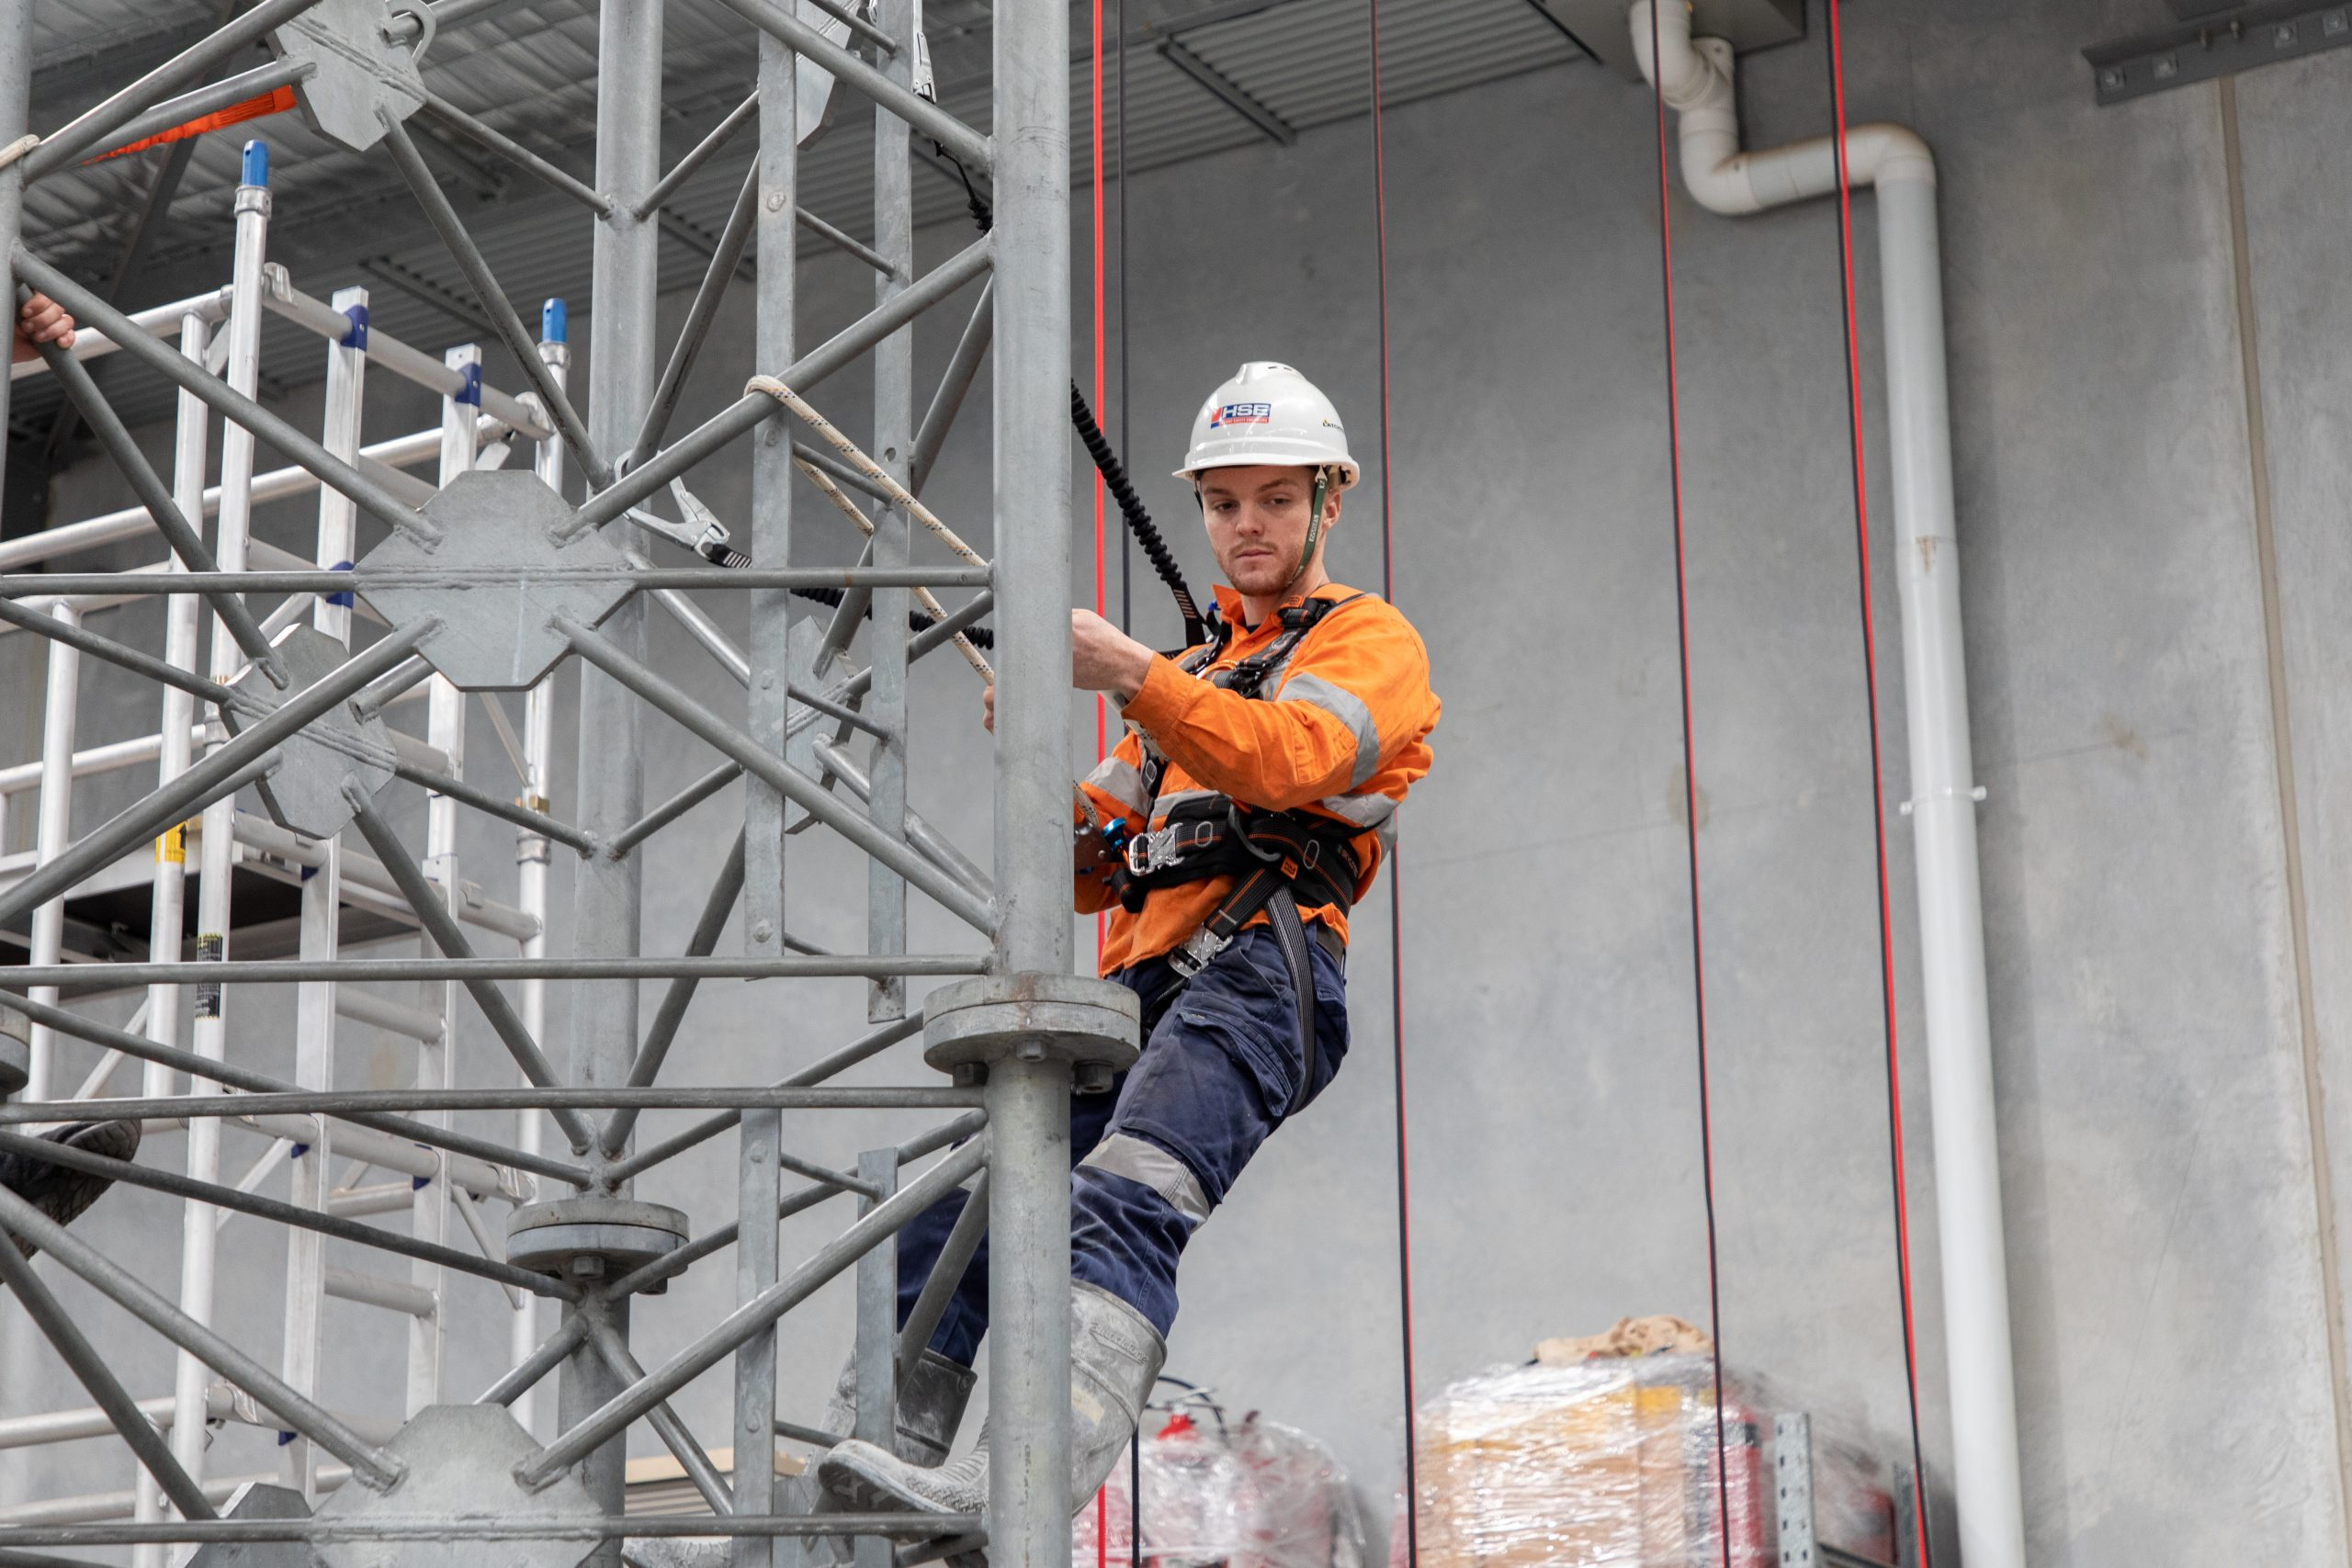 Student using a fall arrest harness while undertaking training at HSE.